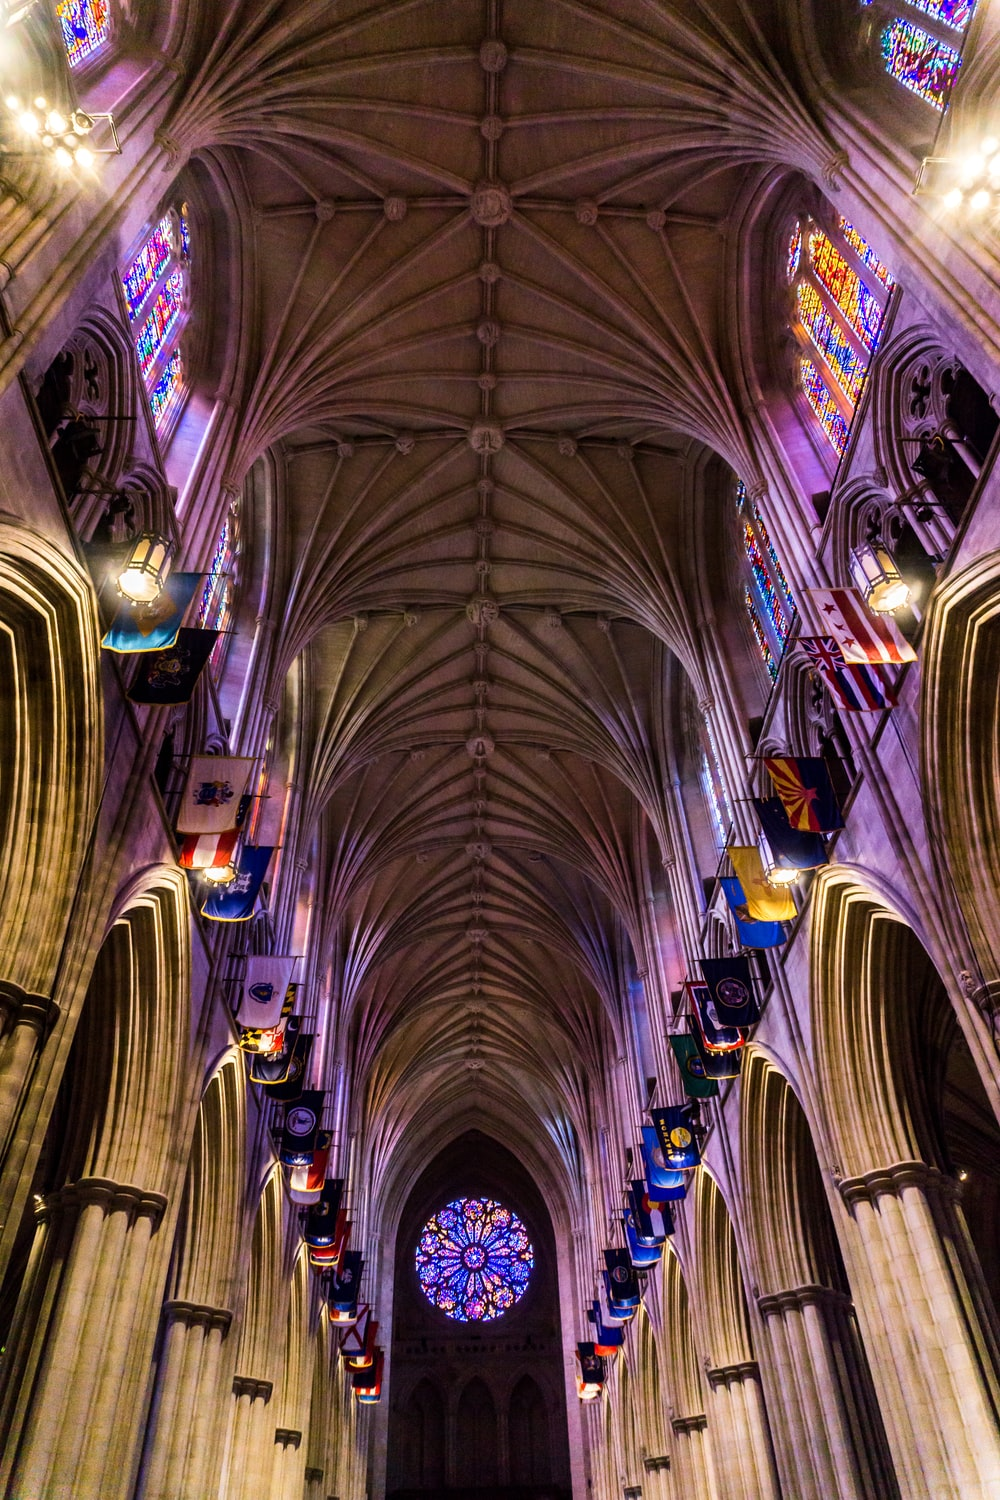 Low Angle Shot Interior Photography Of Cathedral With Multicolored Stained Glass Windows